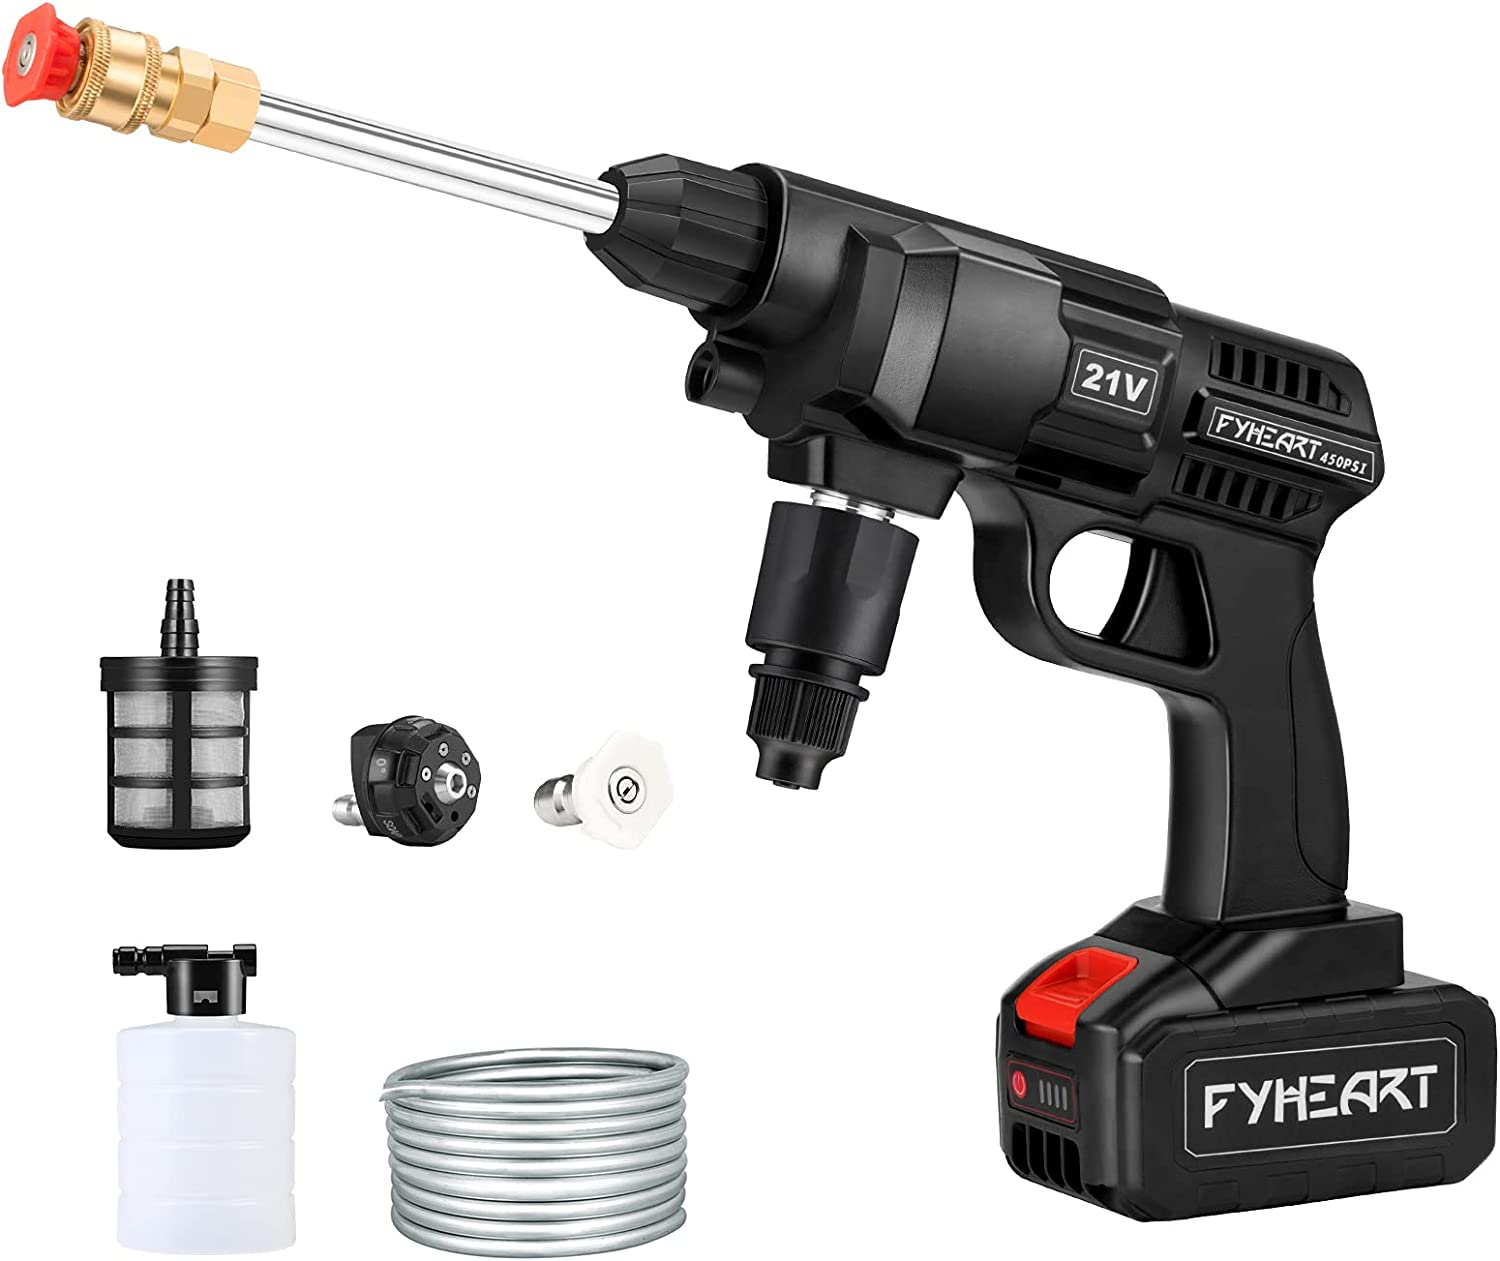 Cordless sale safety Pressure Washer,450PSI Ha Portable Washer